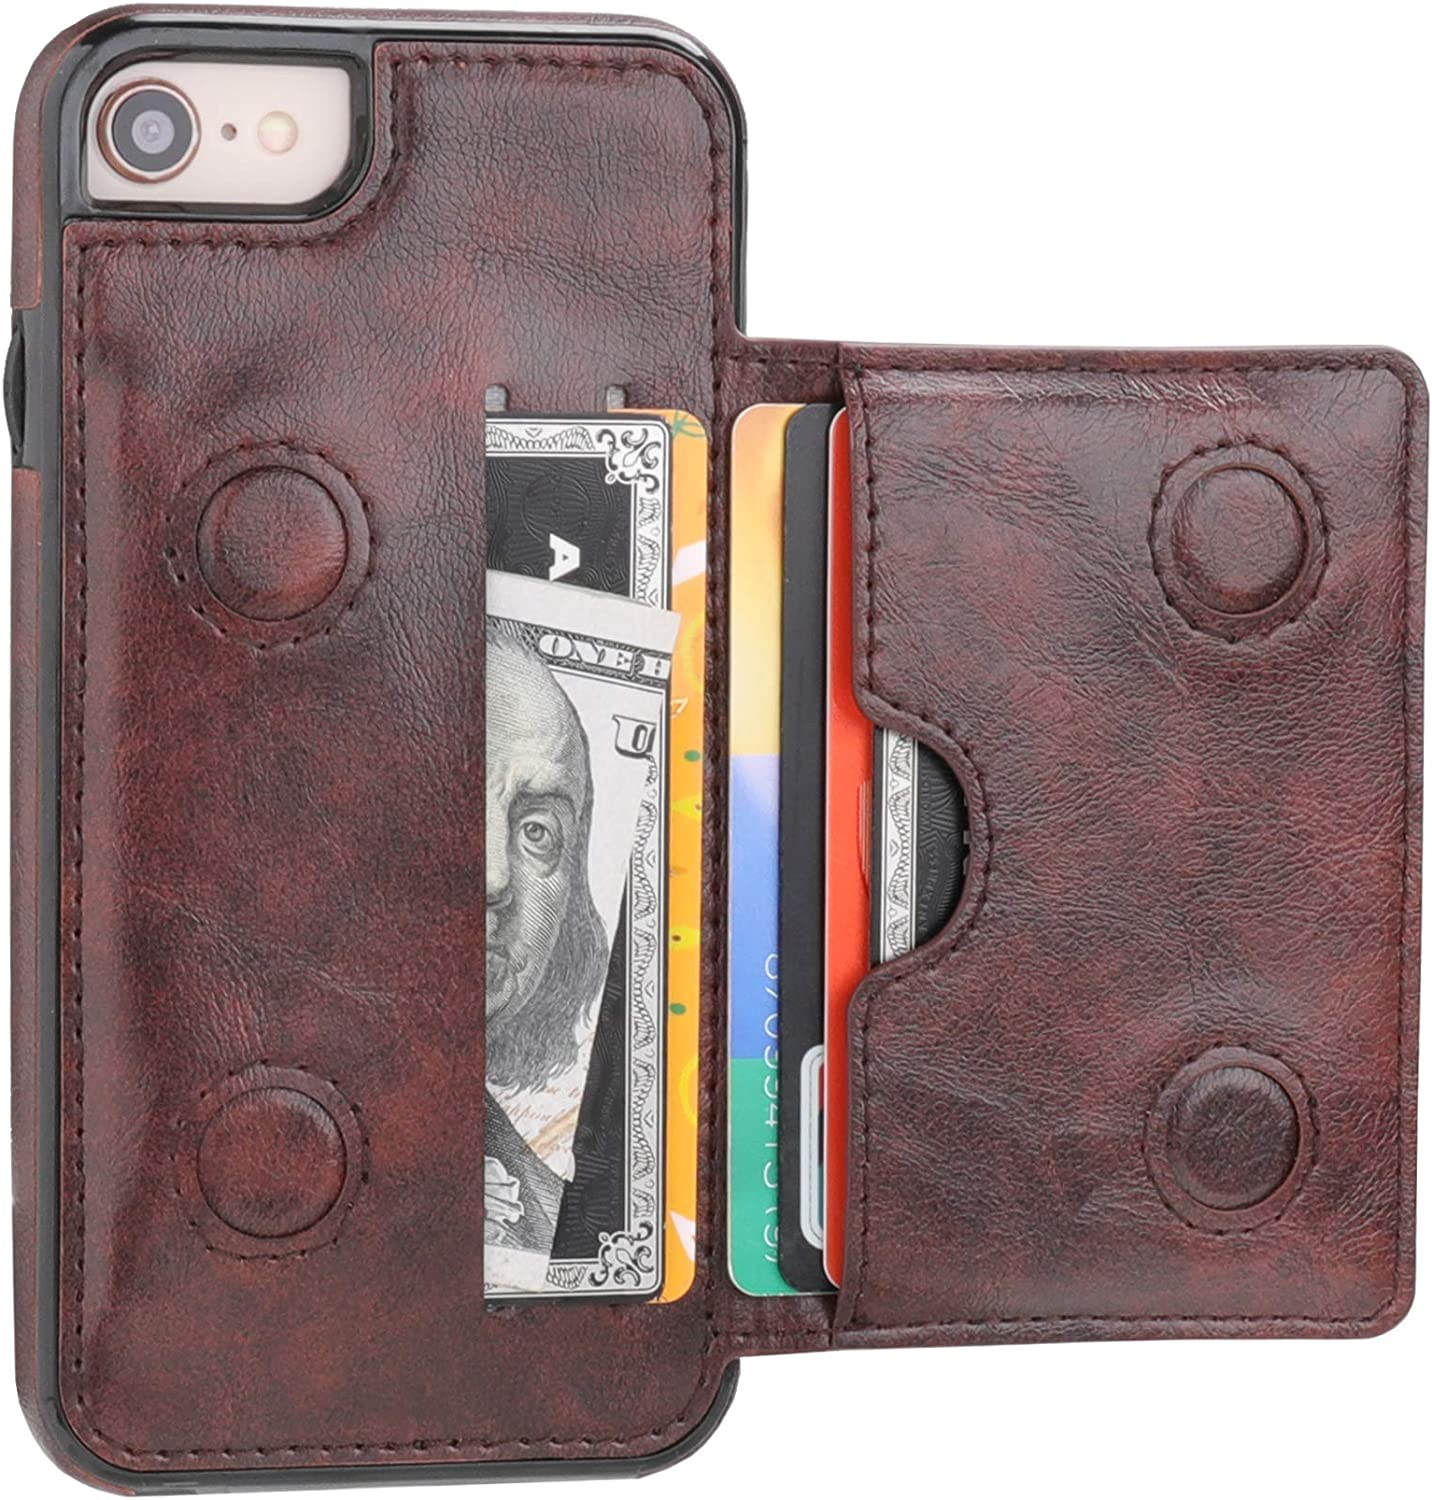 KIHUWEY iPhone 7 Wallet Case iPhone 8 iPhone SE 2020 Wallet Case with Credit Card Holder, Premium Leather Kickstand Durable Shockproof Protective Cover for iPhone 7/8/SE 4.7 Inch(Brown)